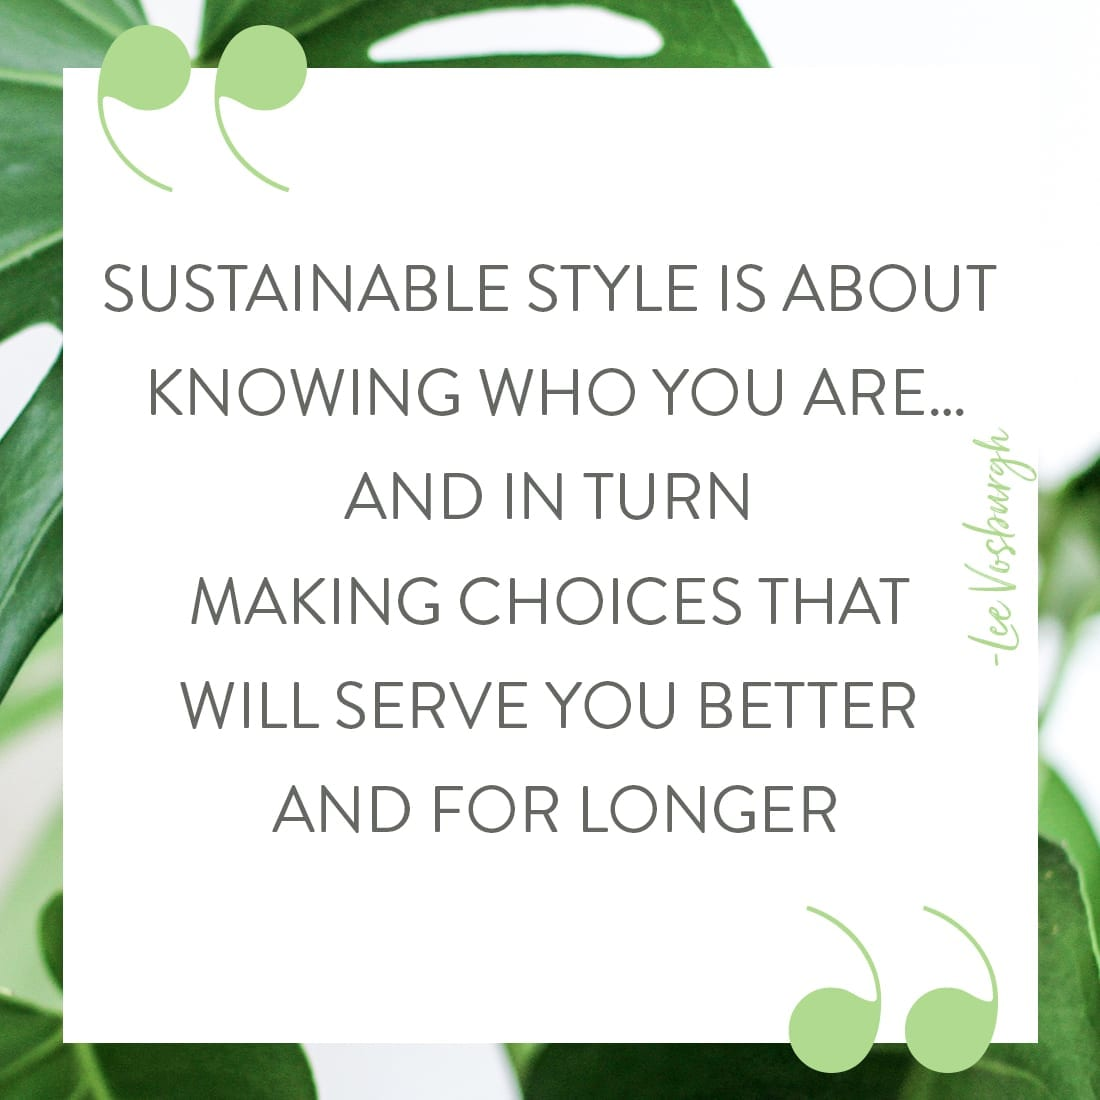 Sustainable style is about knowing who you are…and in turn making choices that will serve you better and for longer